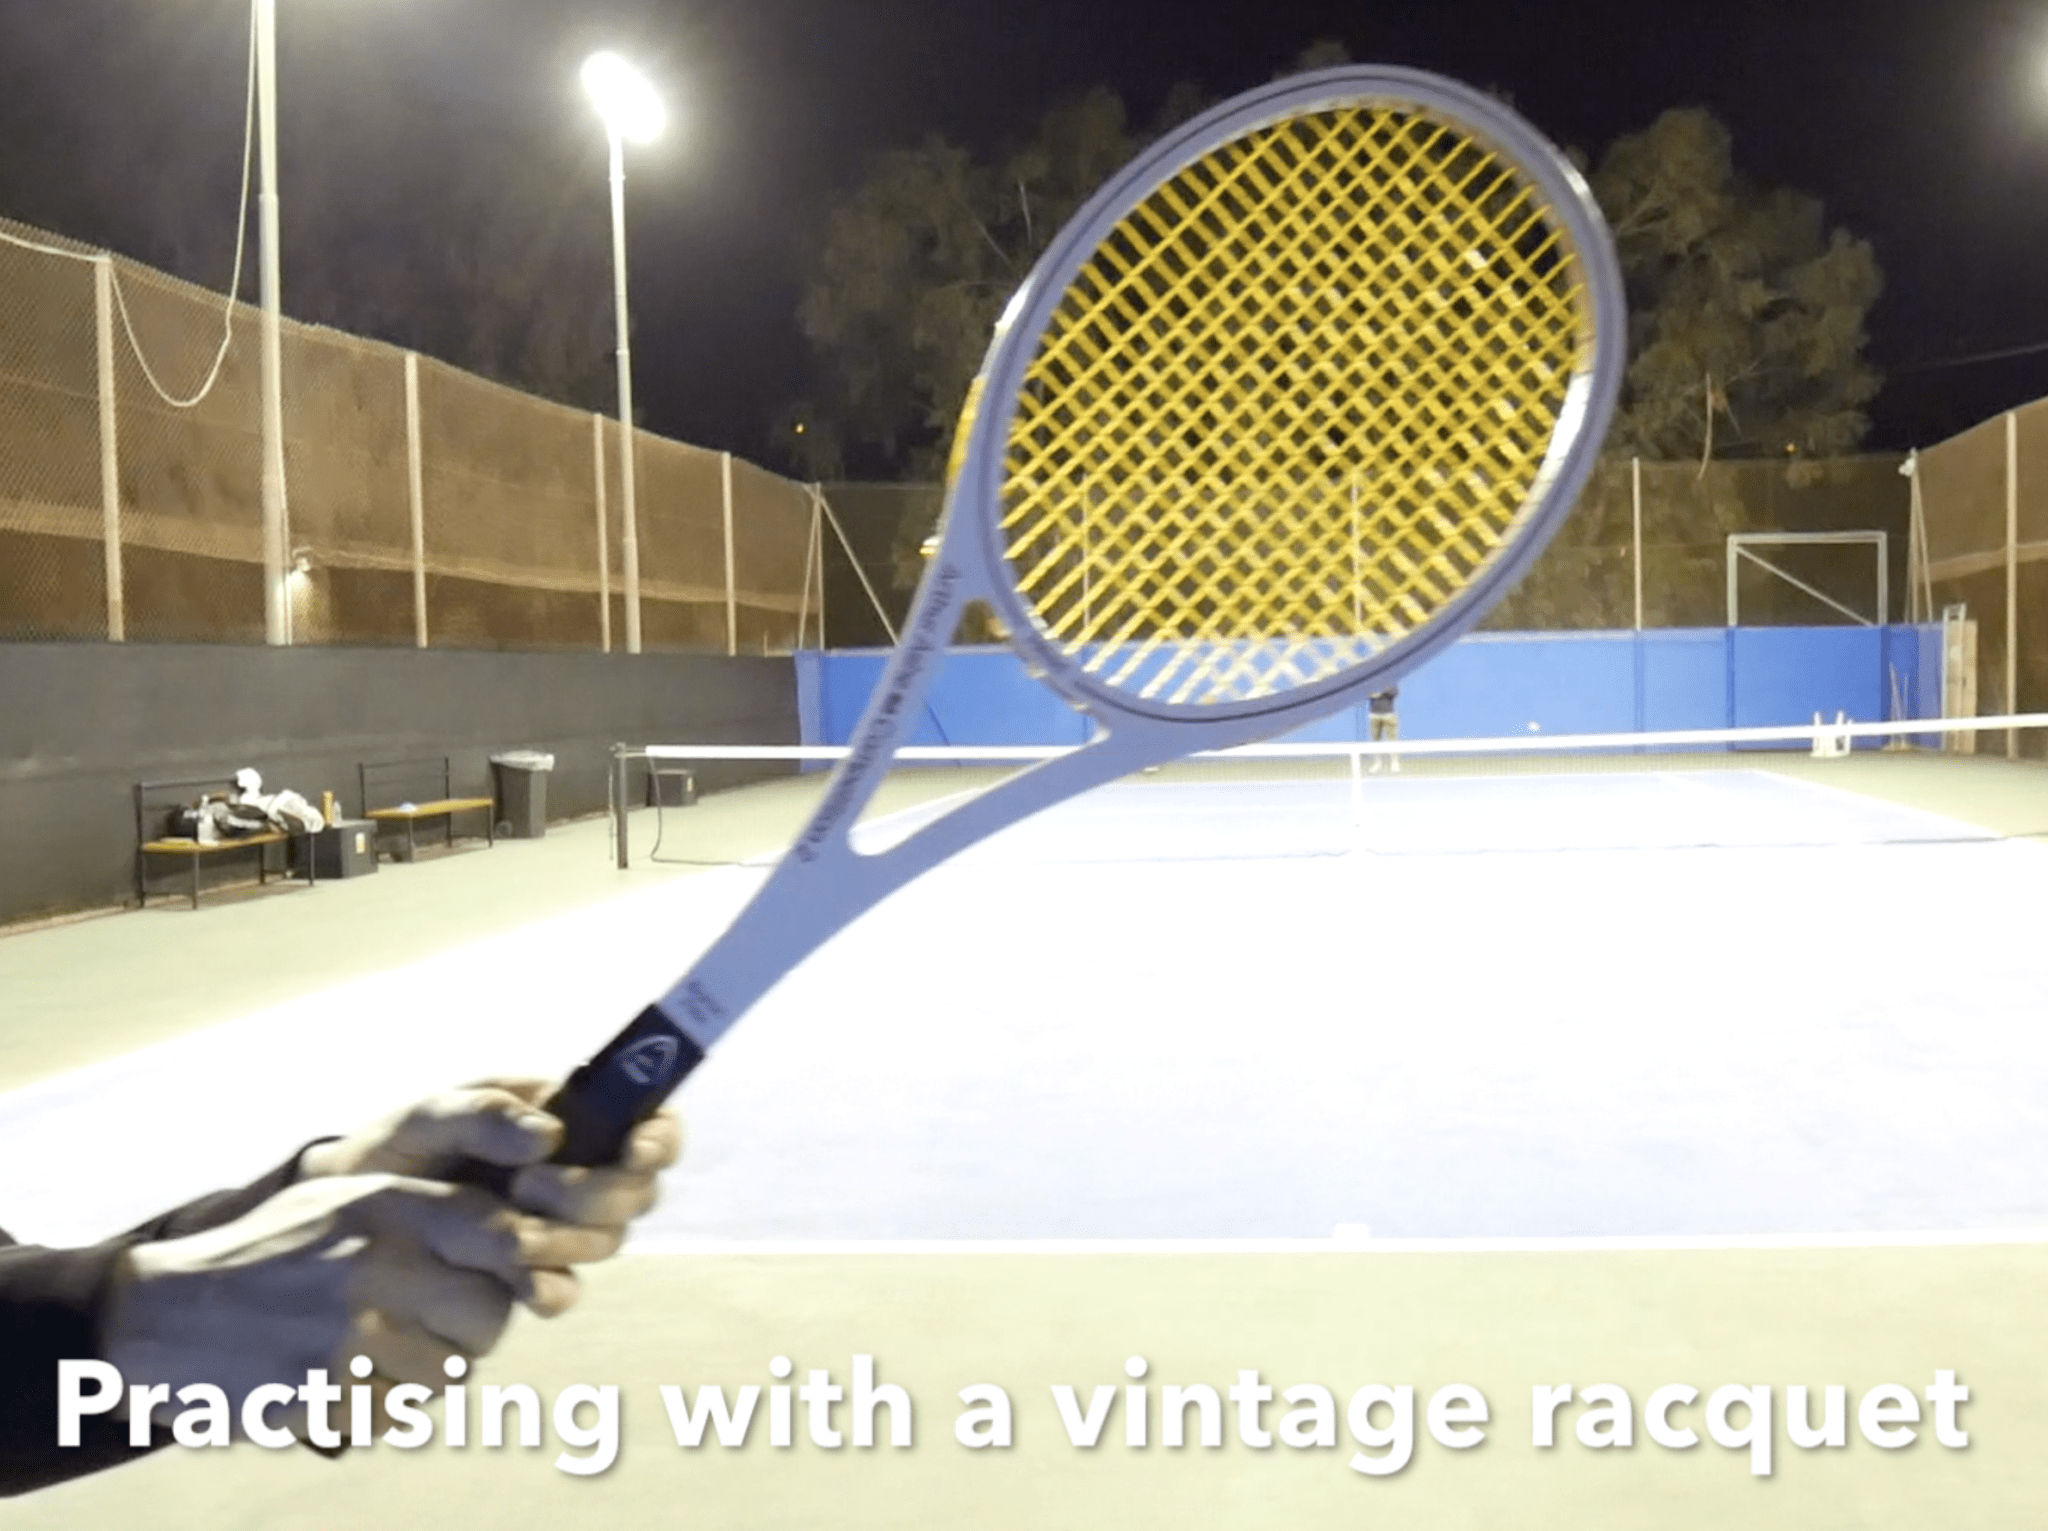 Playing with vintage tennis rackets - Arthur Ashe